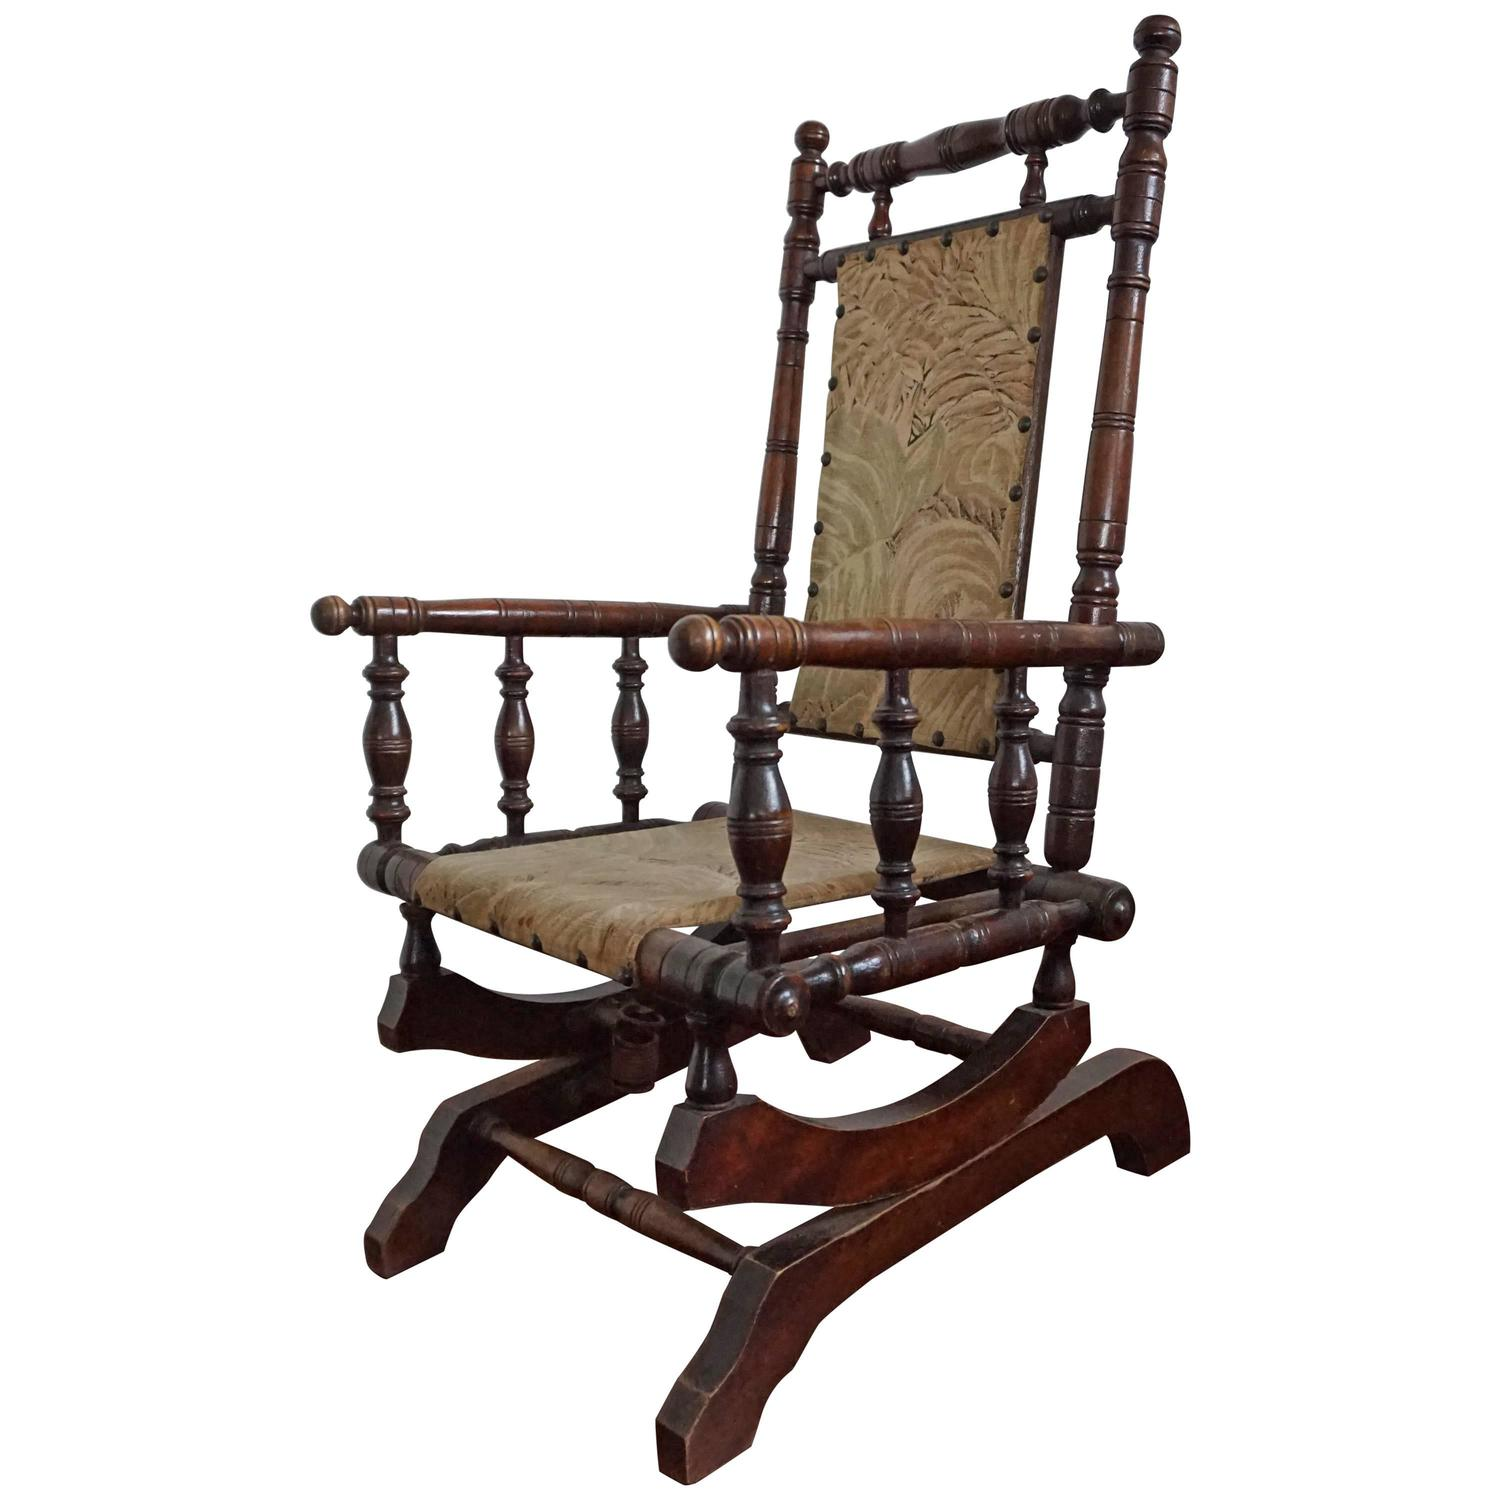 Rare Antique Rocking Chair for Children American Rocker for Child or Toy  Bear For Sale at 1stdibs - Rare Antique Rocking Chair For Children American Rocker For Child Or